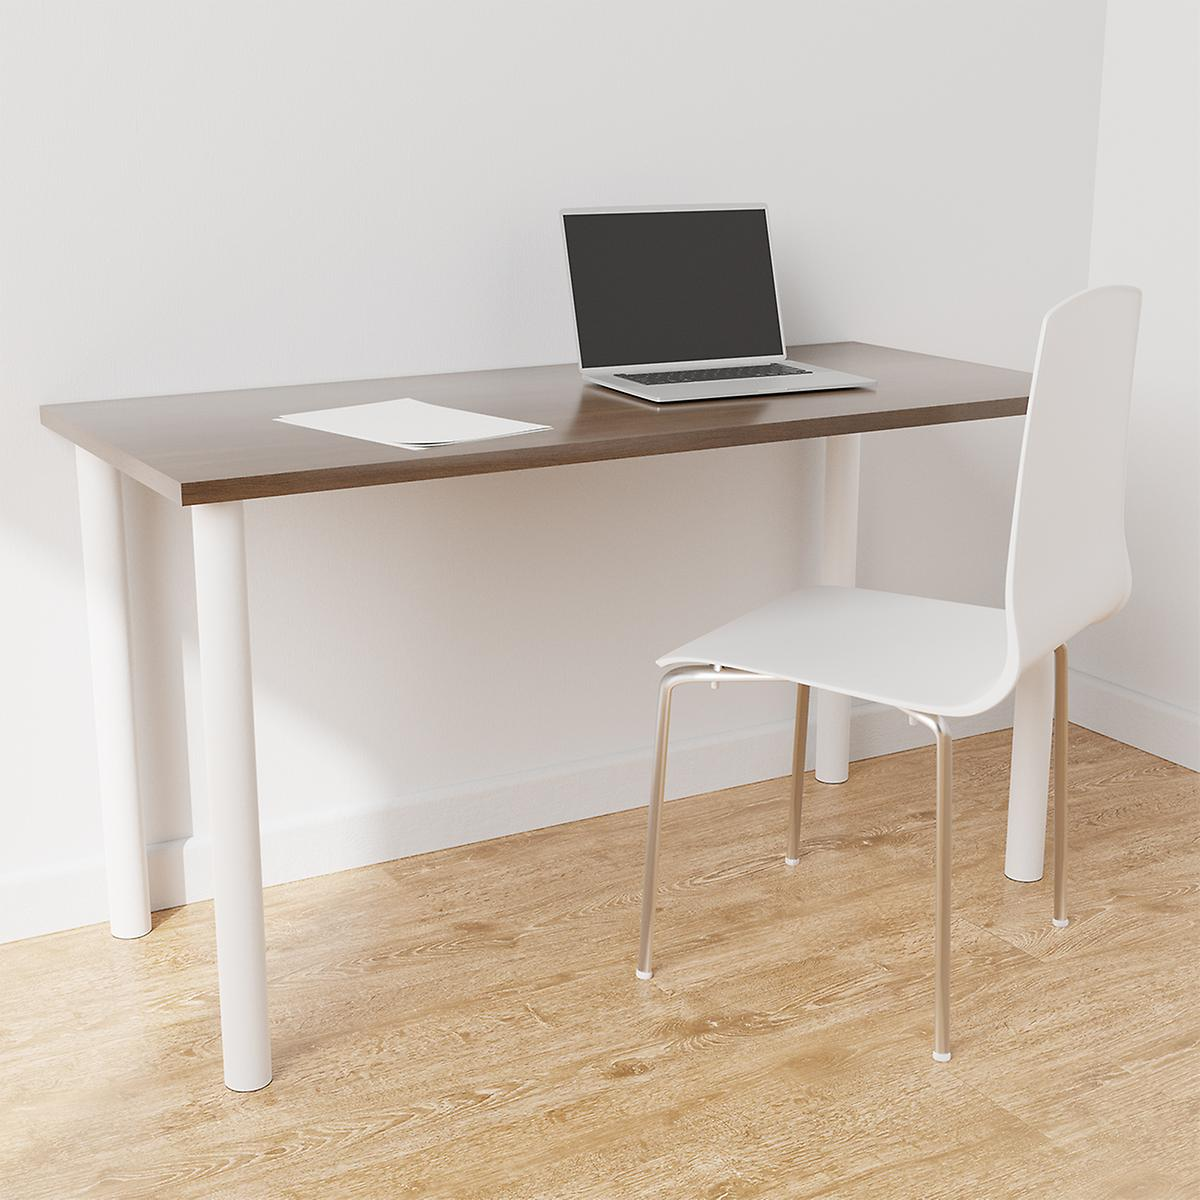 Elfa White & Driftwood Desk